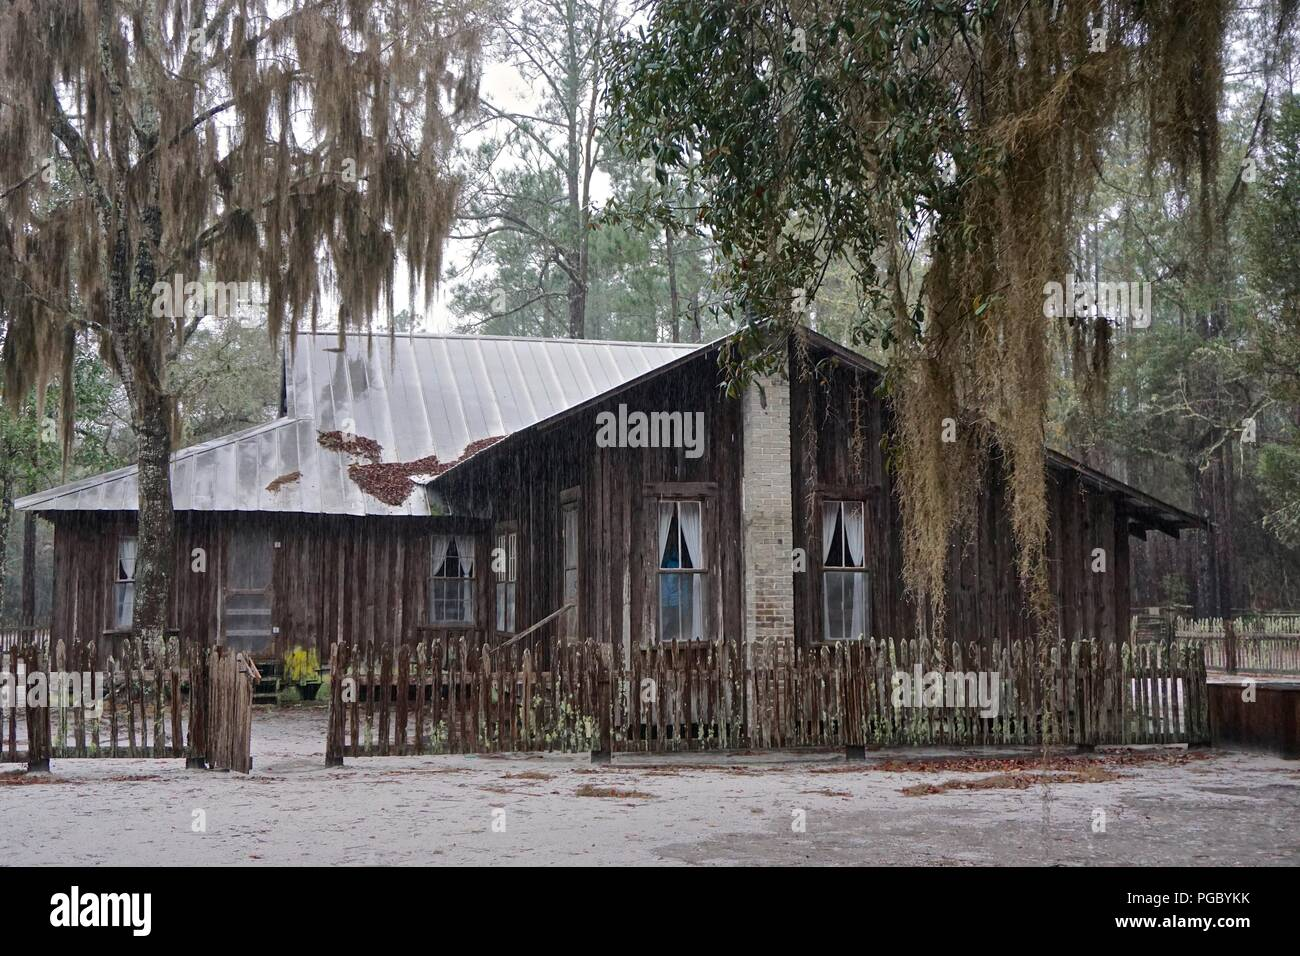 Chesser Island, GA, USA: The abandoned Chesser homestead stands on an island on the eastern edge of the Okefenokee Swamp, a National Wildlife Refuge. - Stock Image